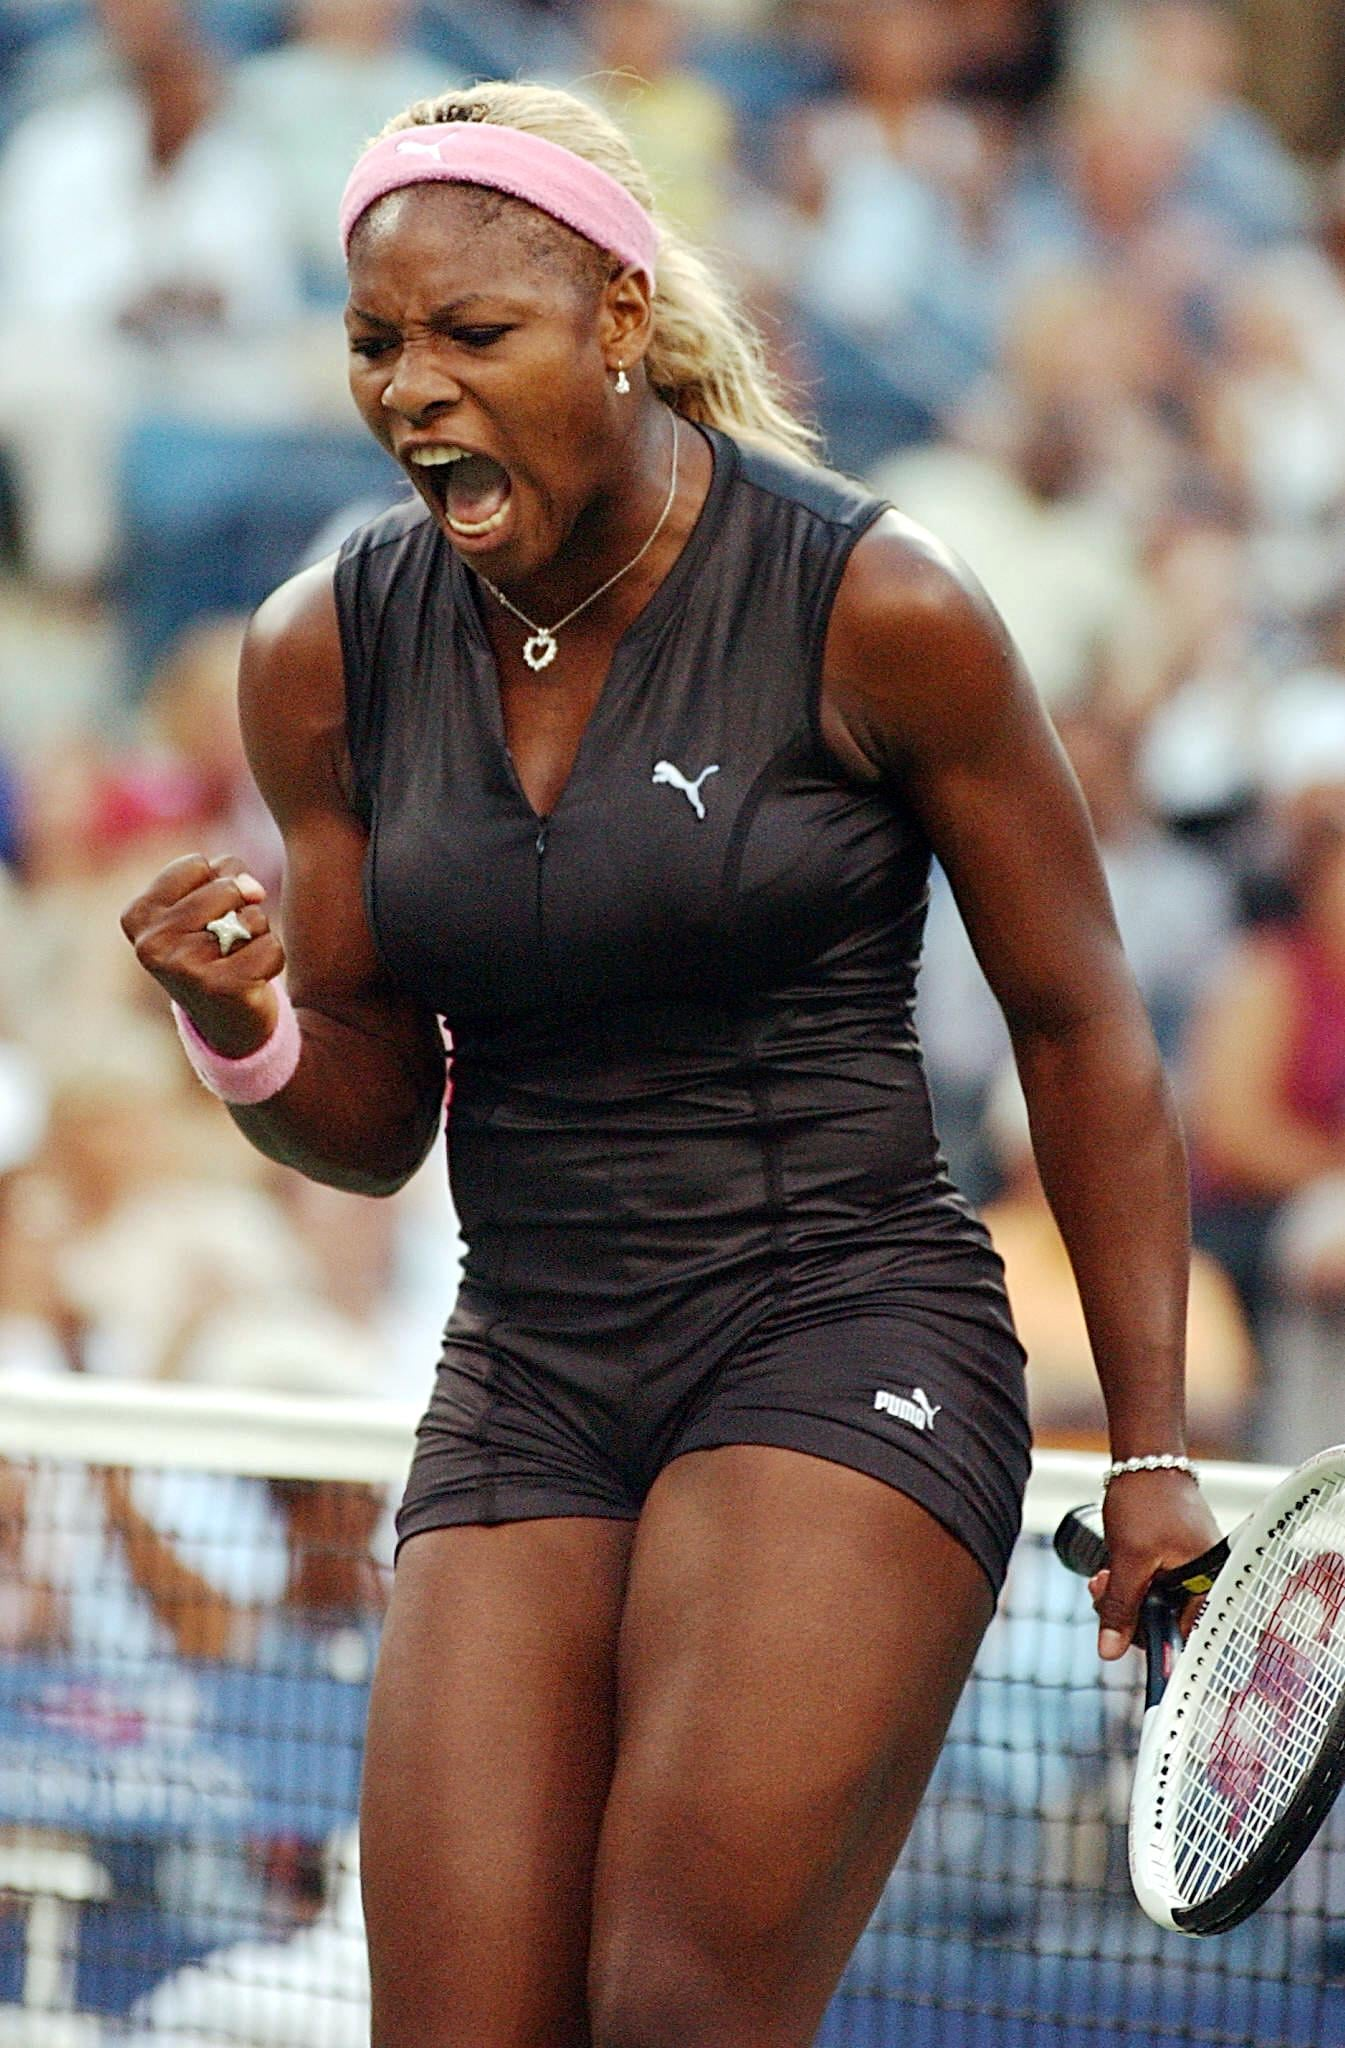 Serena Williams donned a leather catsuit by Puma at the 2002